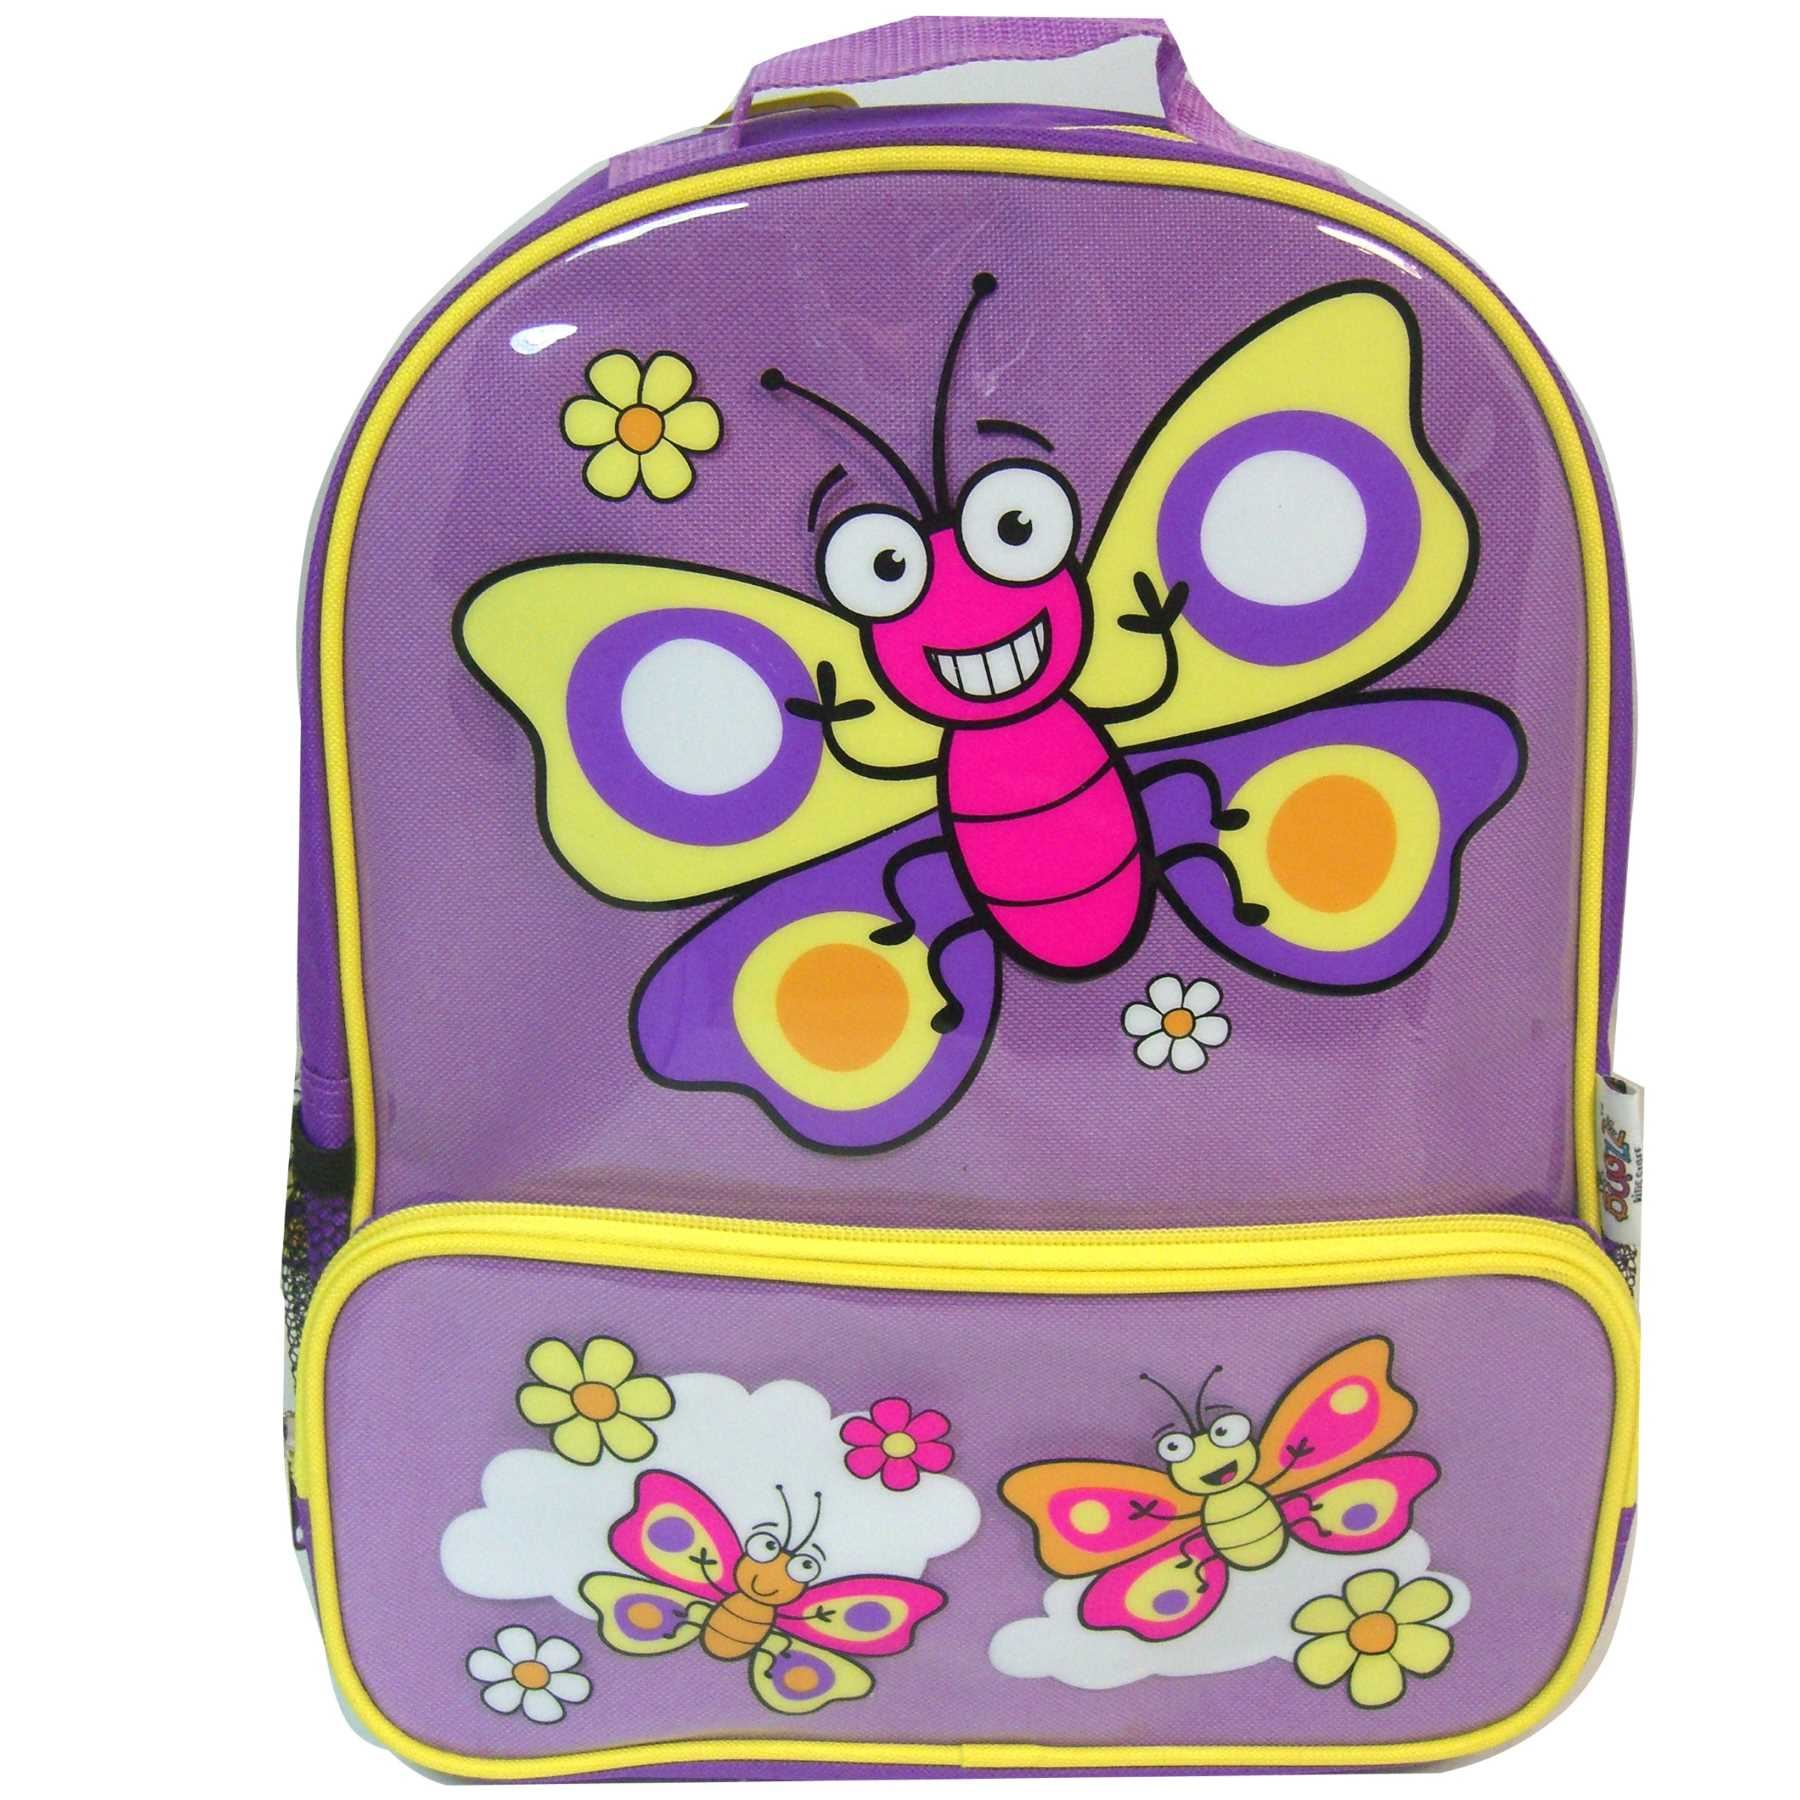 Bugzz PURPLE BUTTERFLY Backpack School Bag Rucksack Girls Swimming Childs Kids